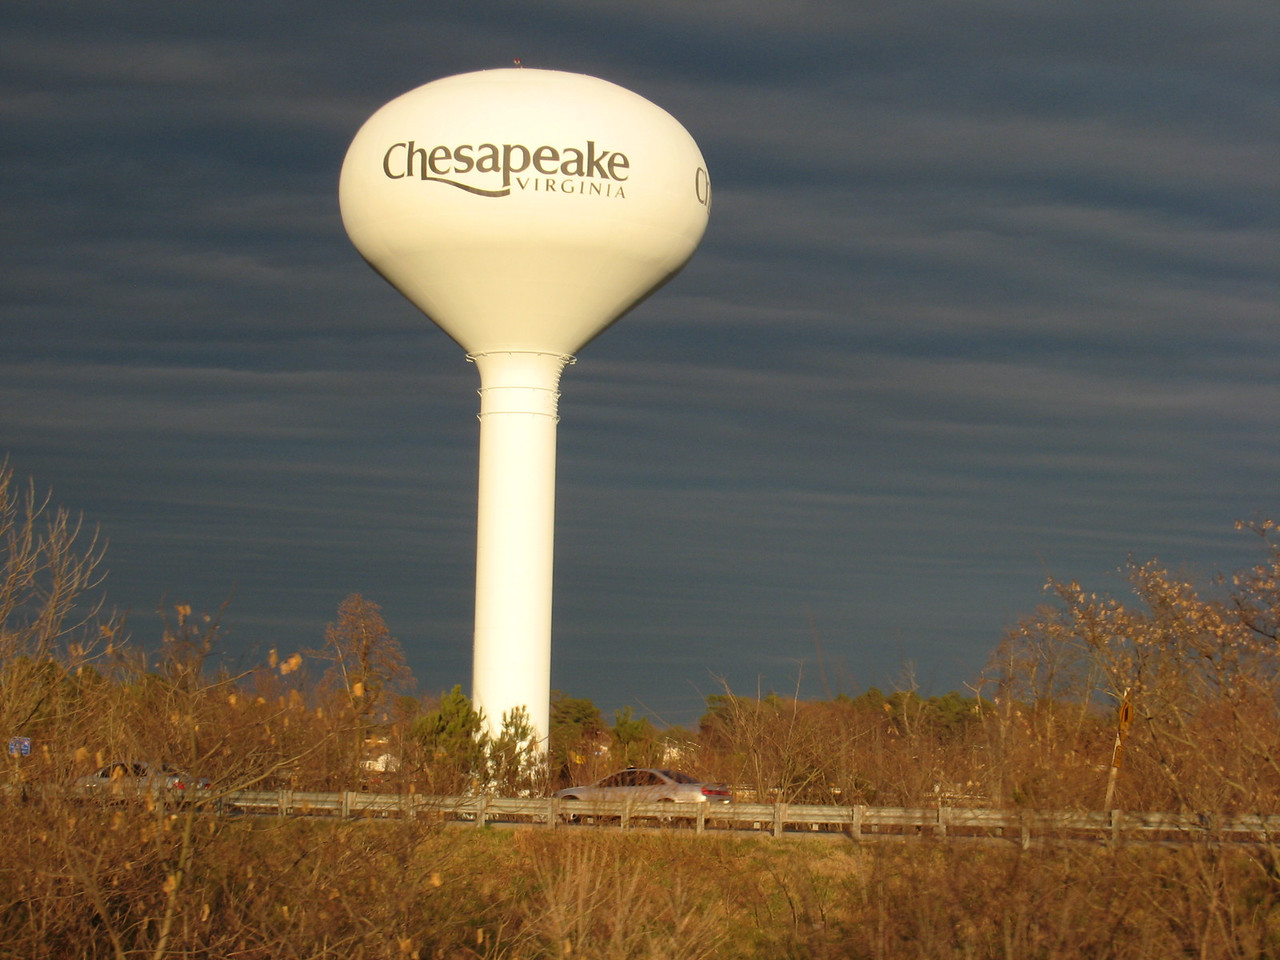 Entering into the city of Chesapeake